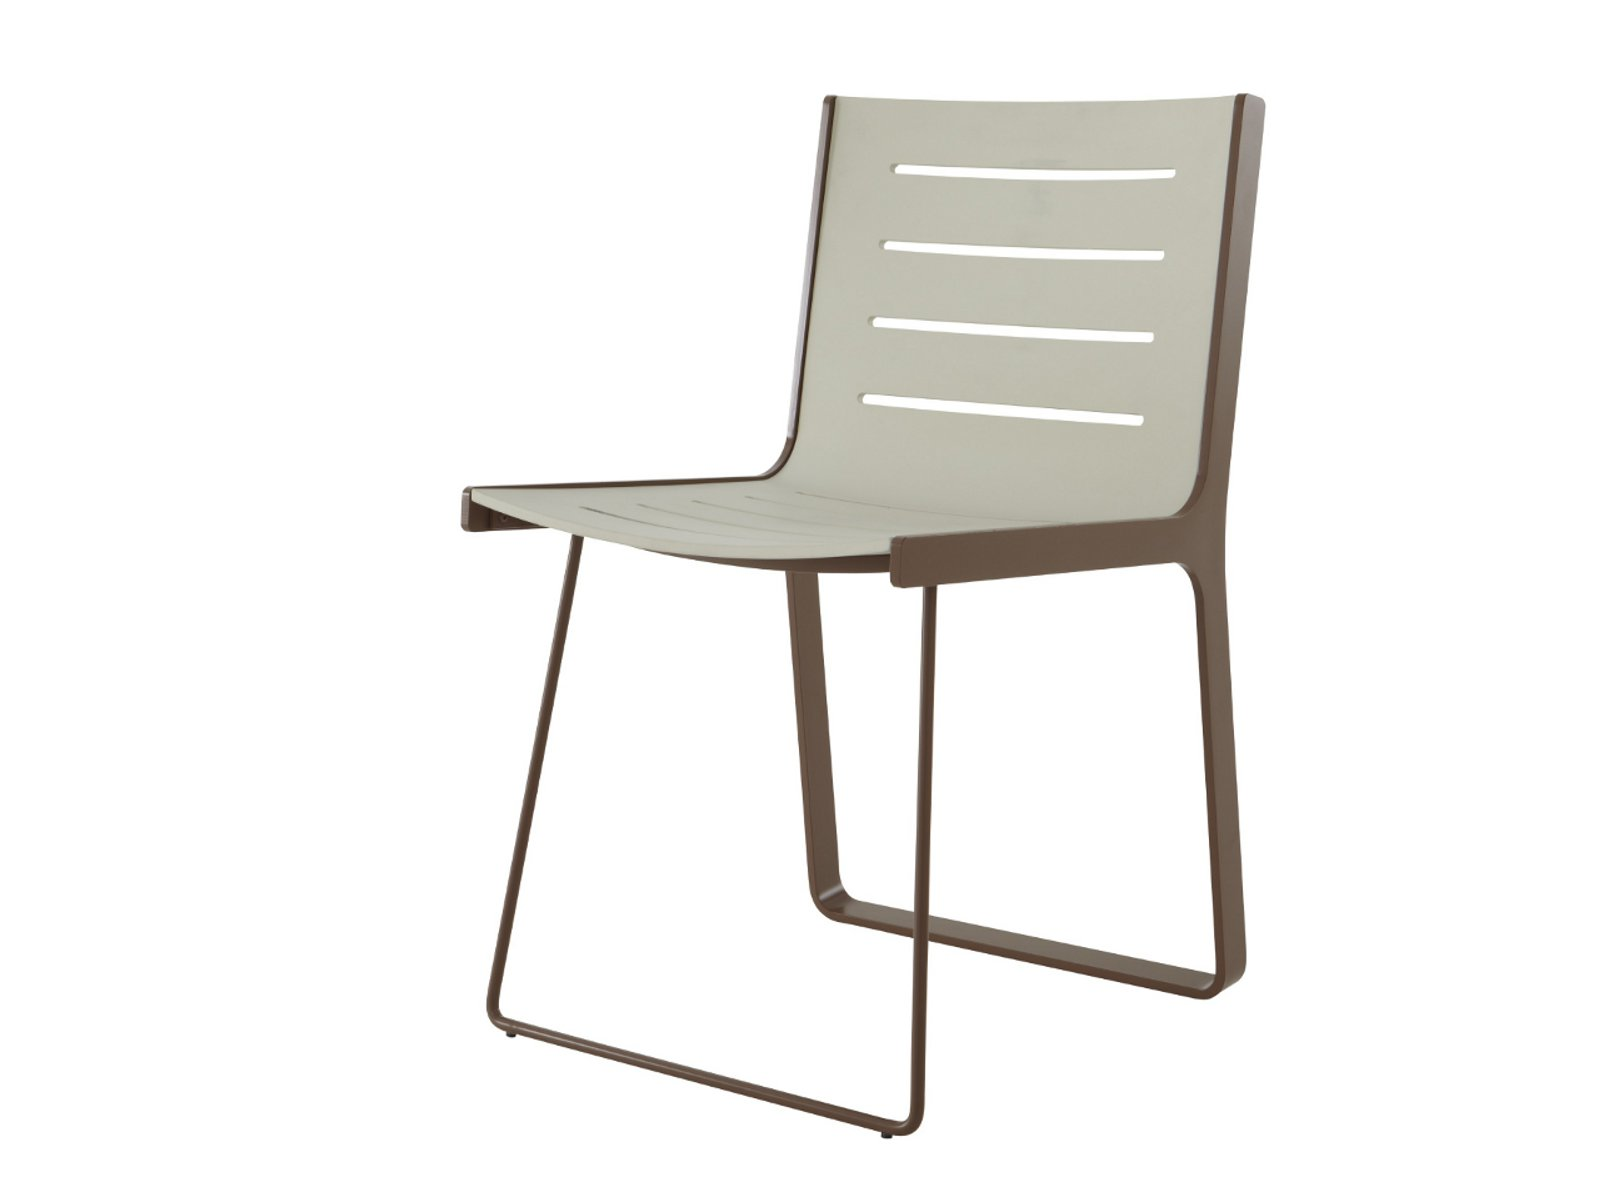 Plastic chair ALUCHAIR by ROSET ITALIA design Jacques Ferrier